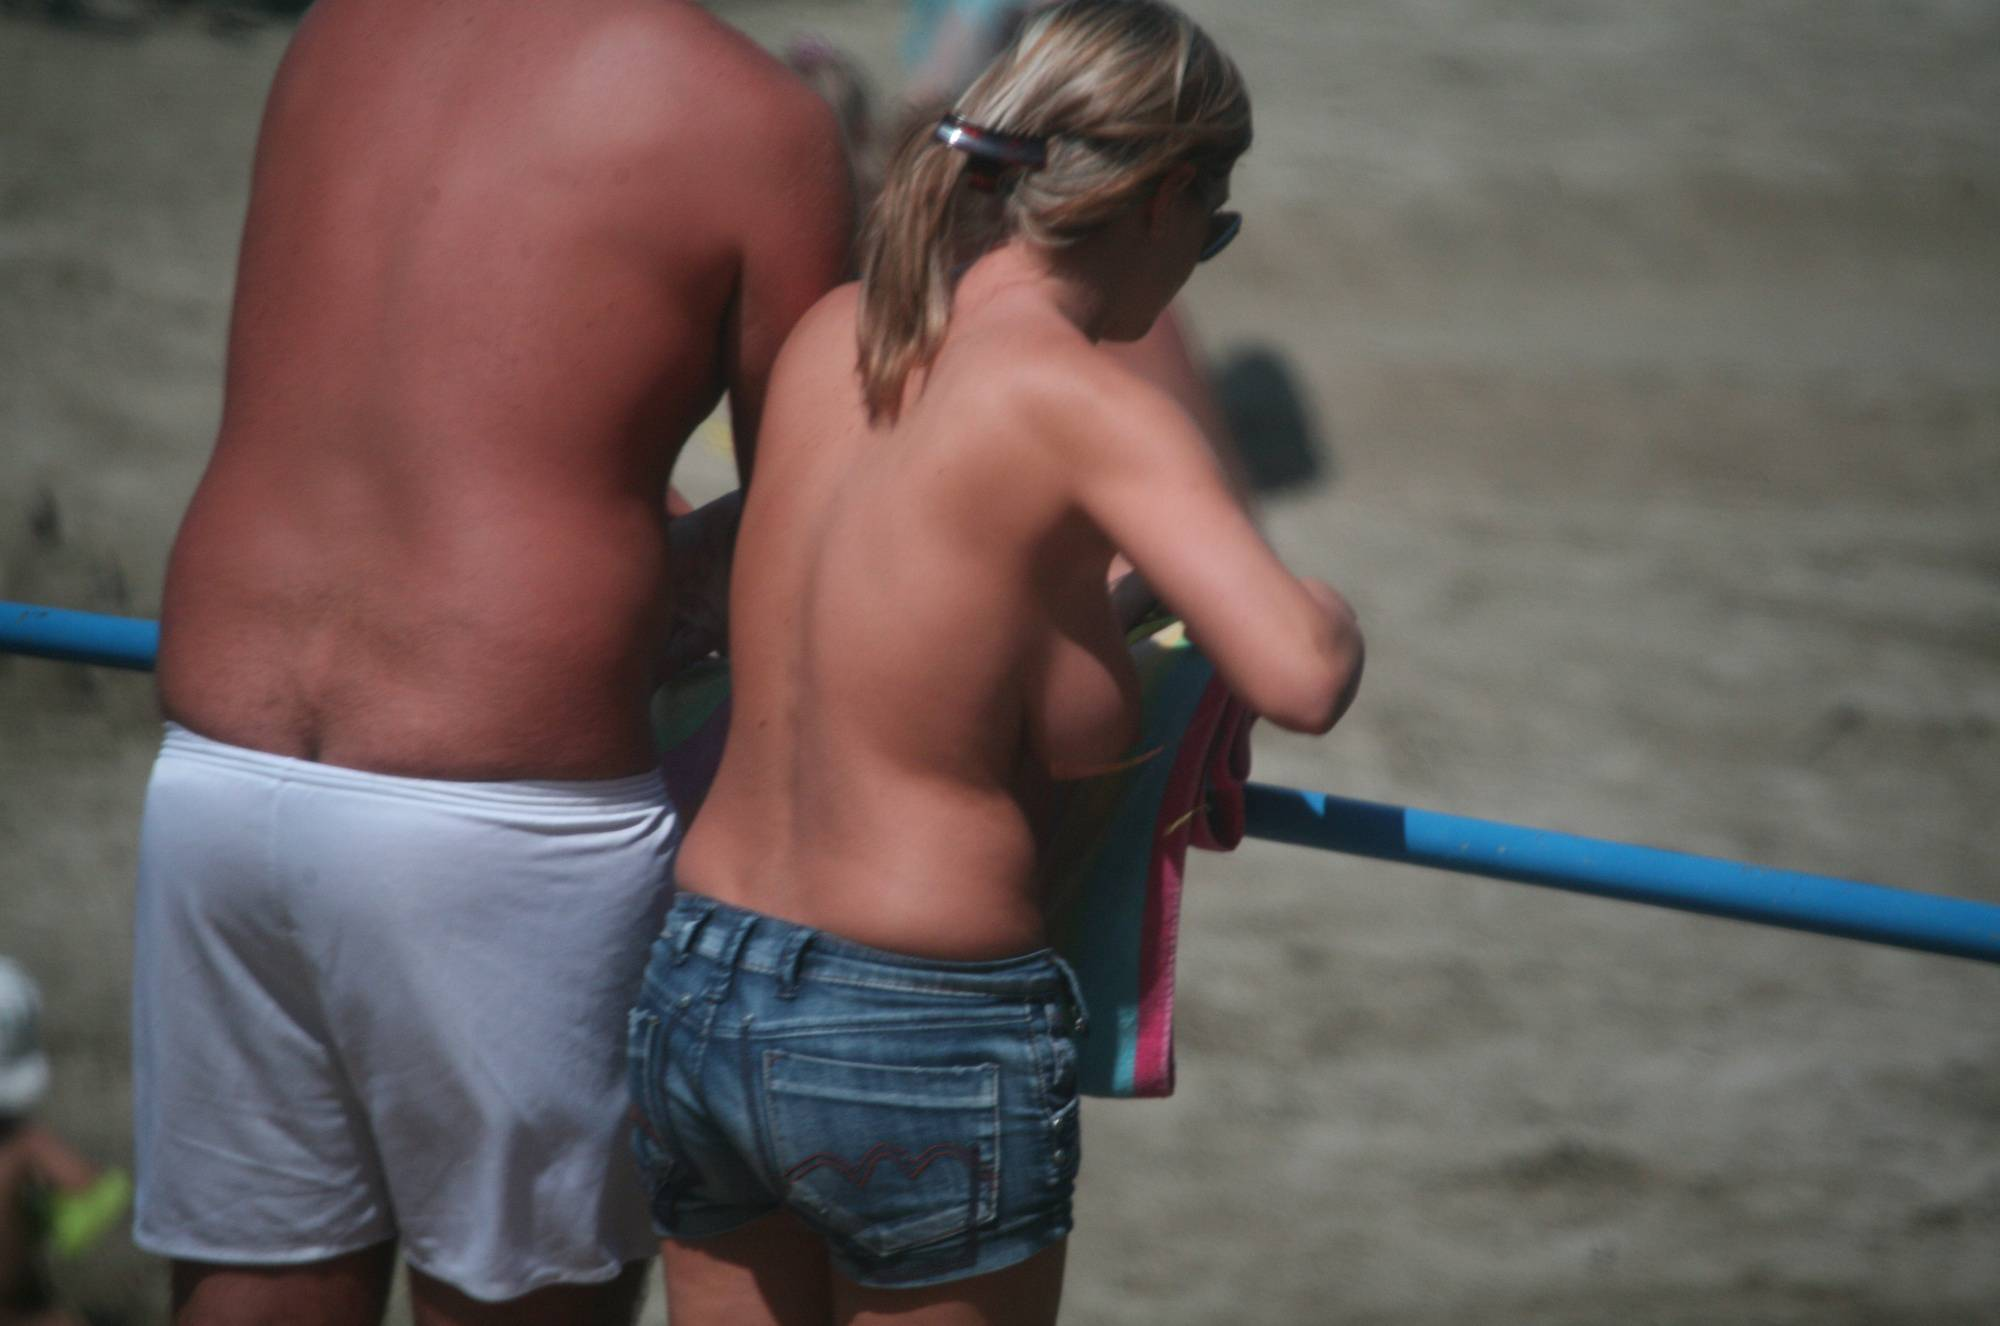 Nudist Pics Pier FKK Shorts Couple - 1